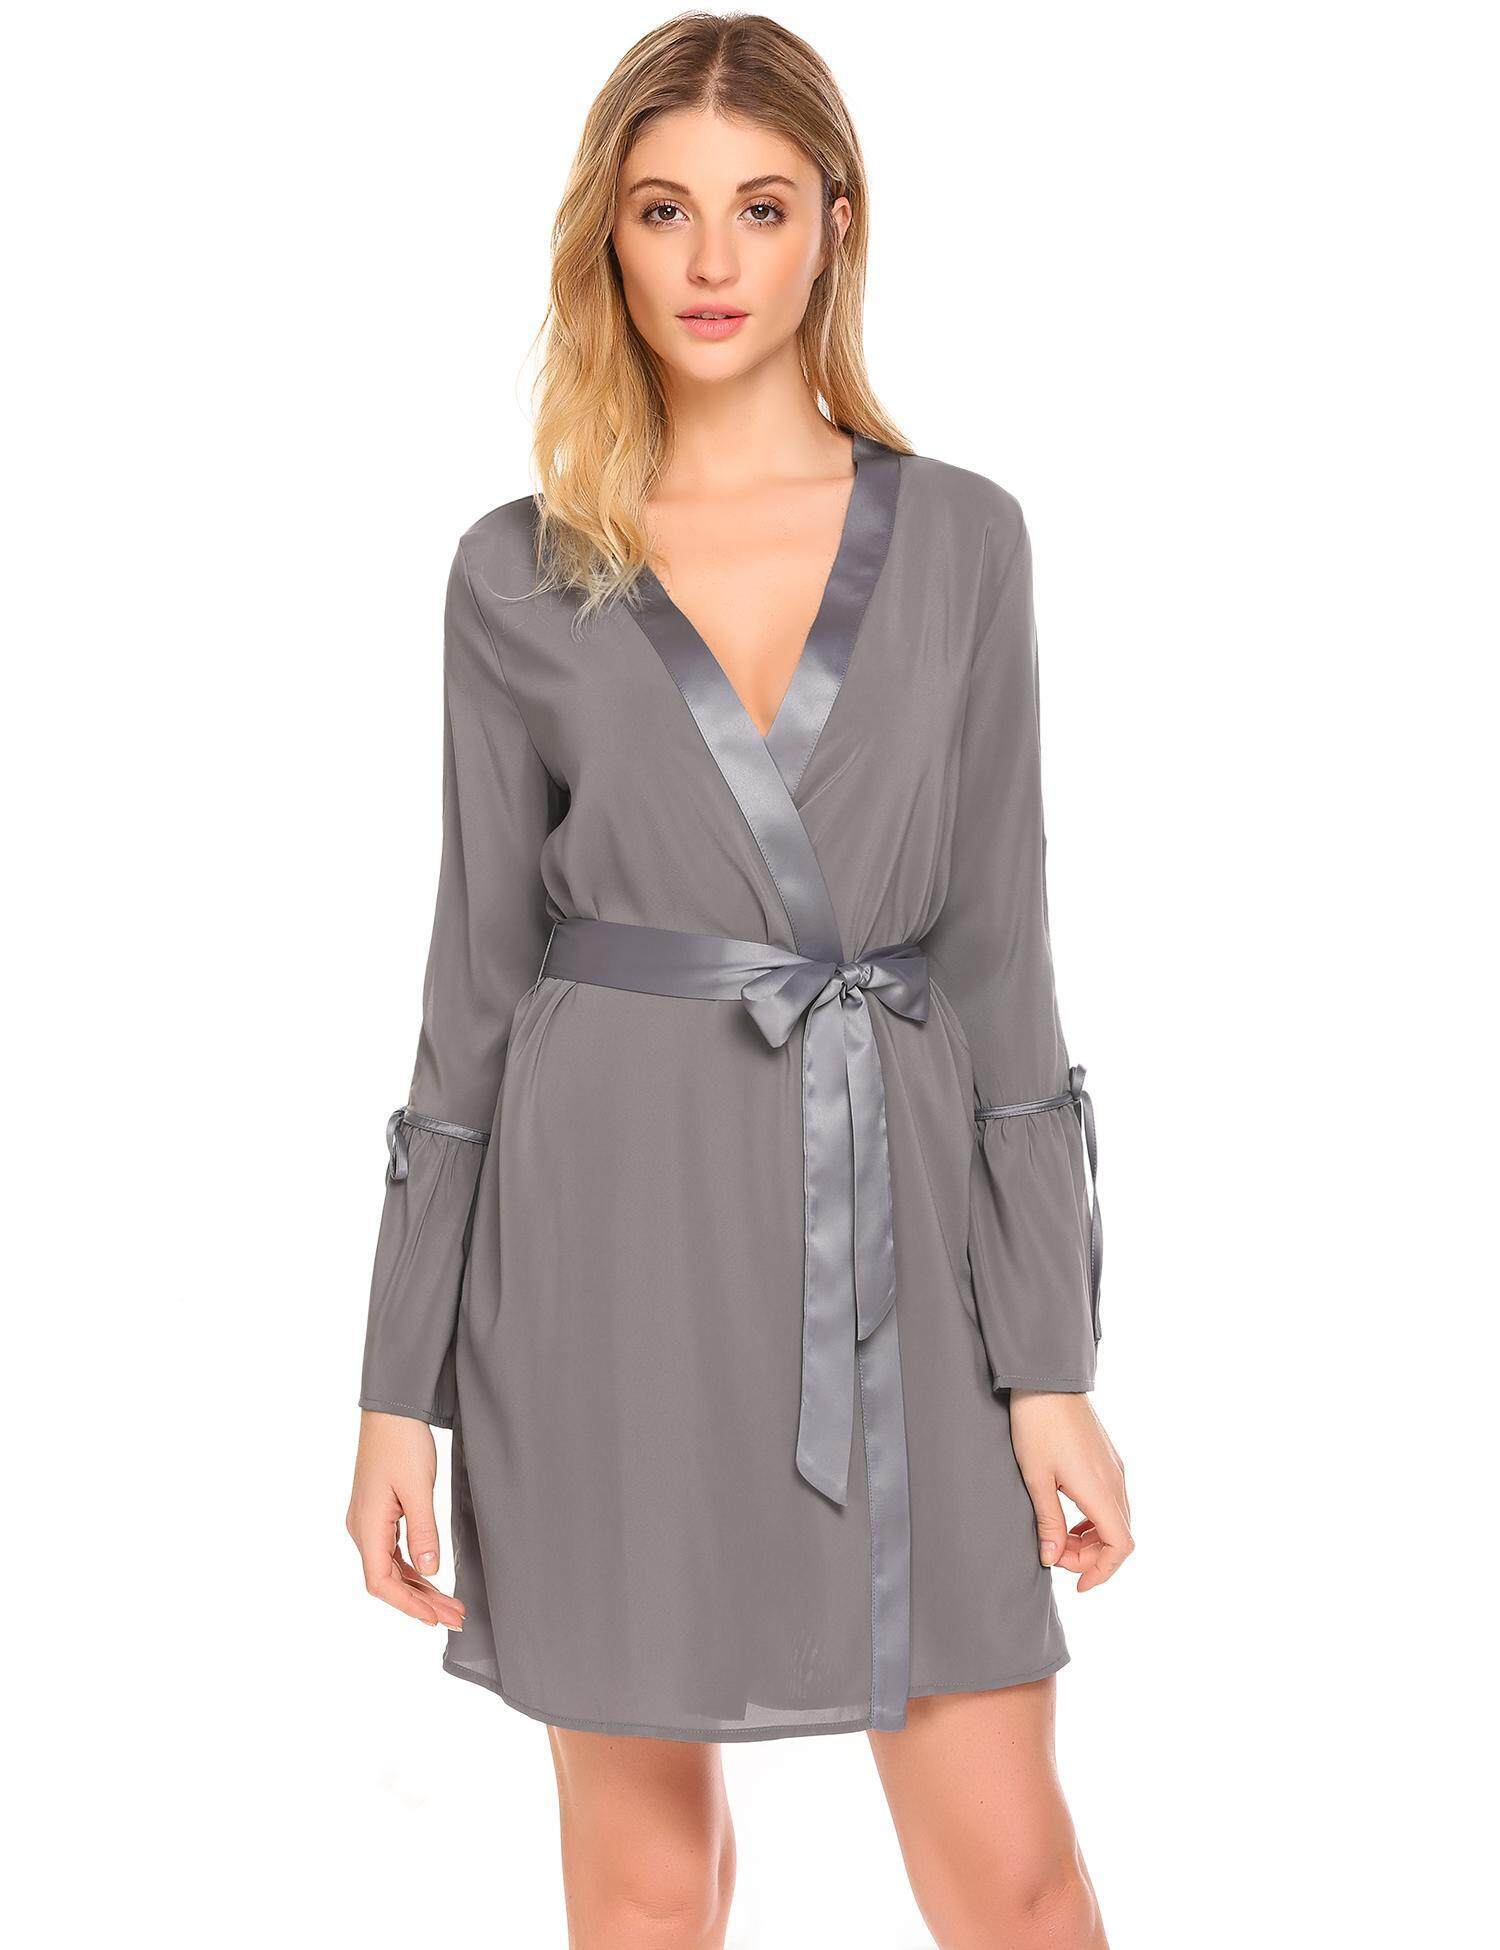 Womens Robes for sale - Night Robes for Women online brands, prices ...